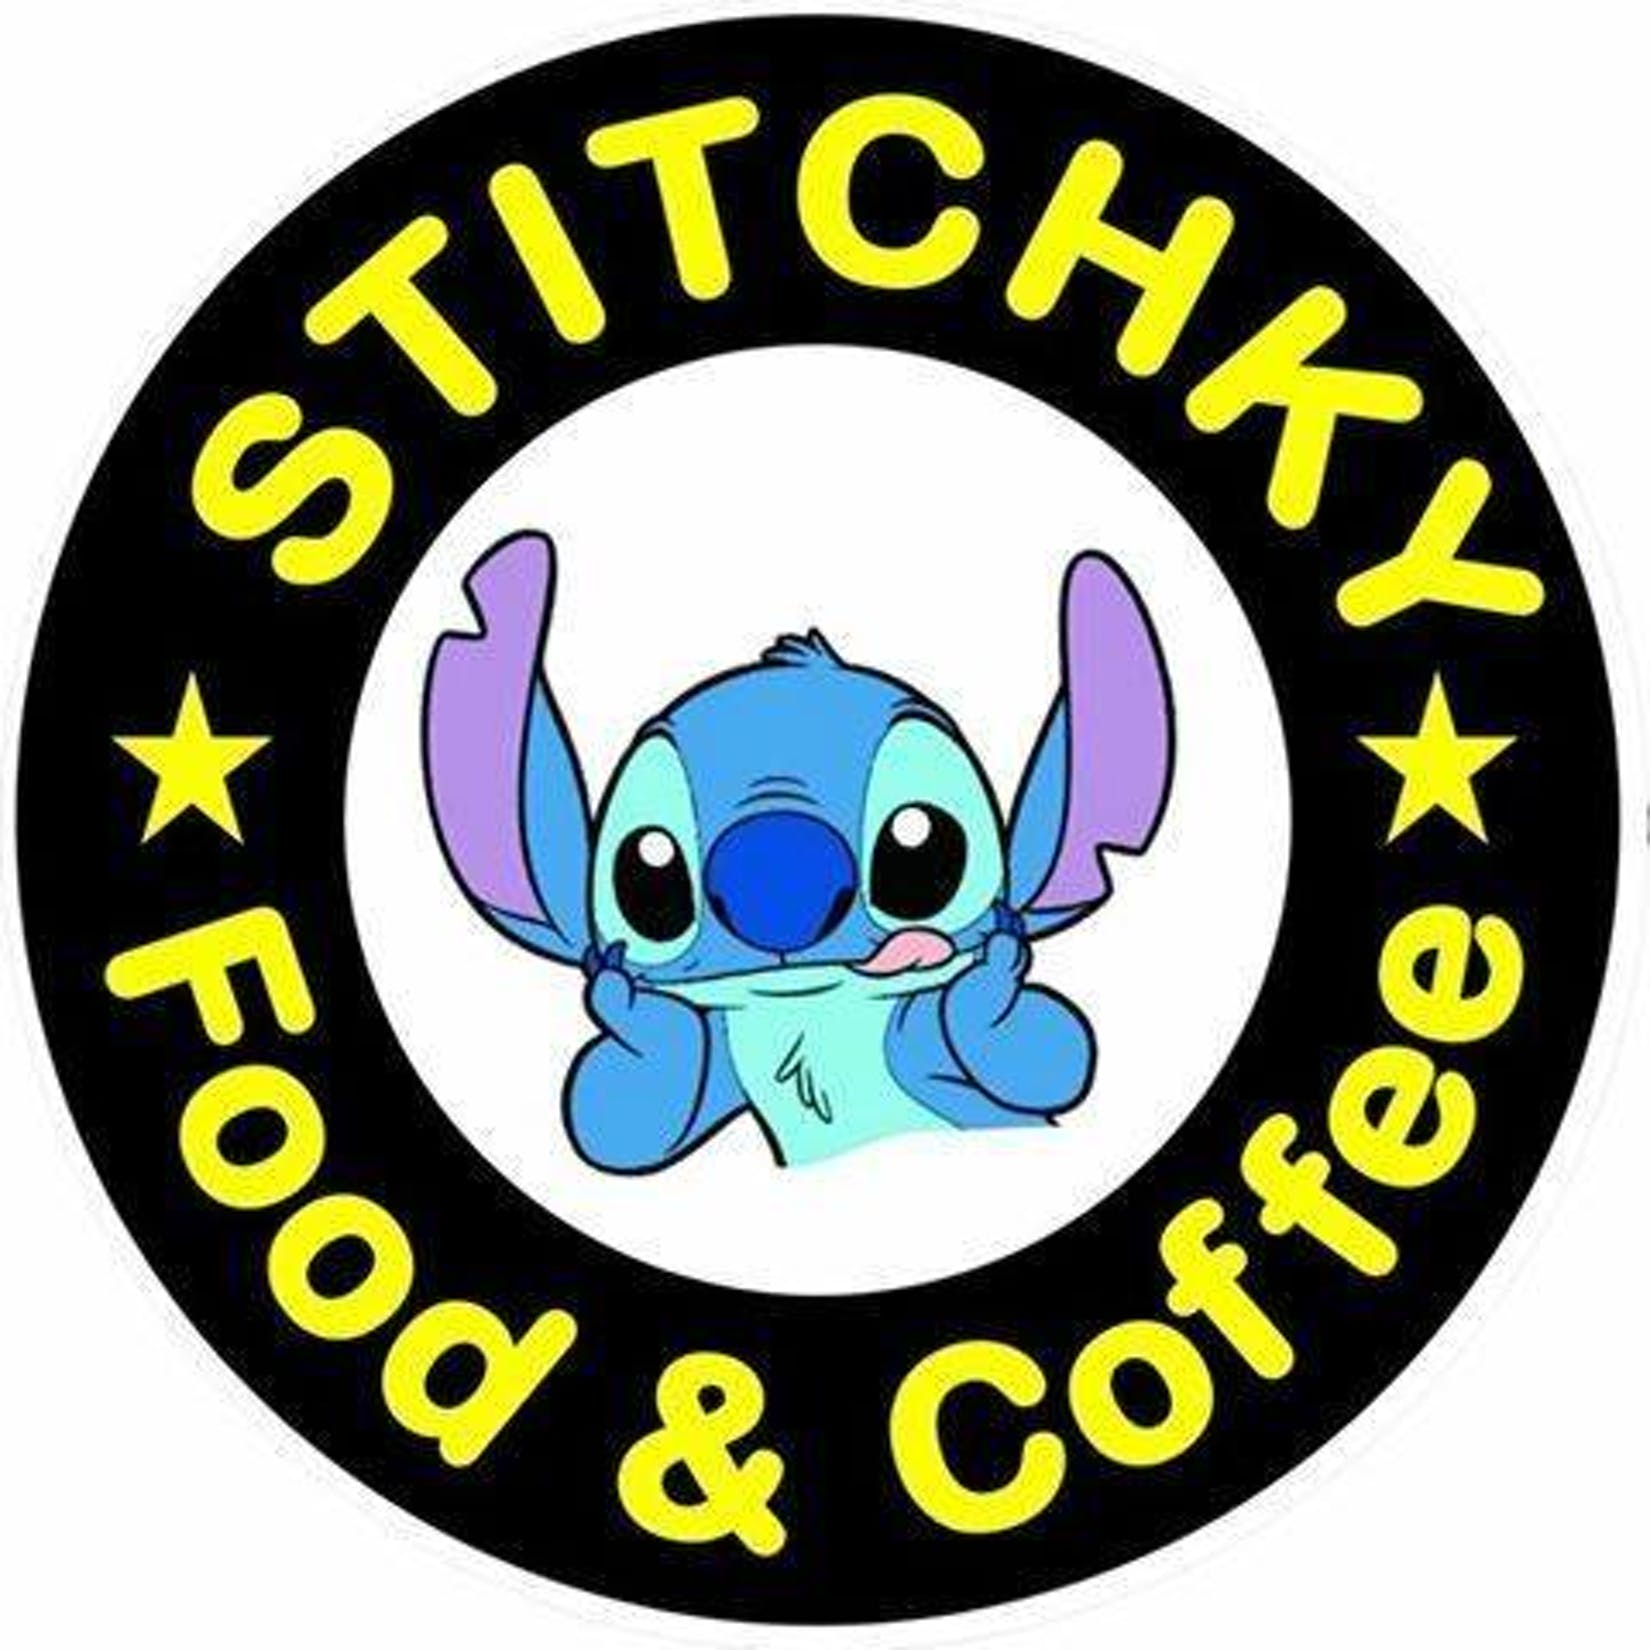 STITCHKY food & Coffee | yathar